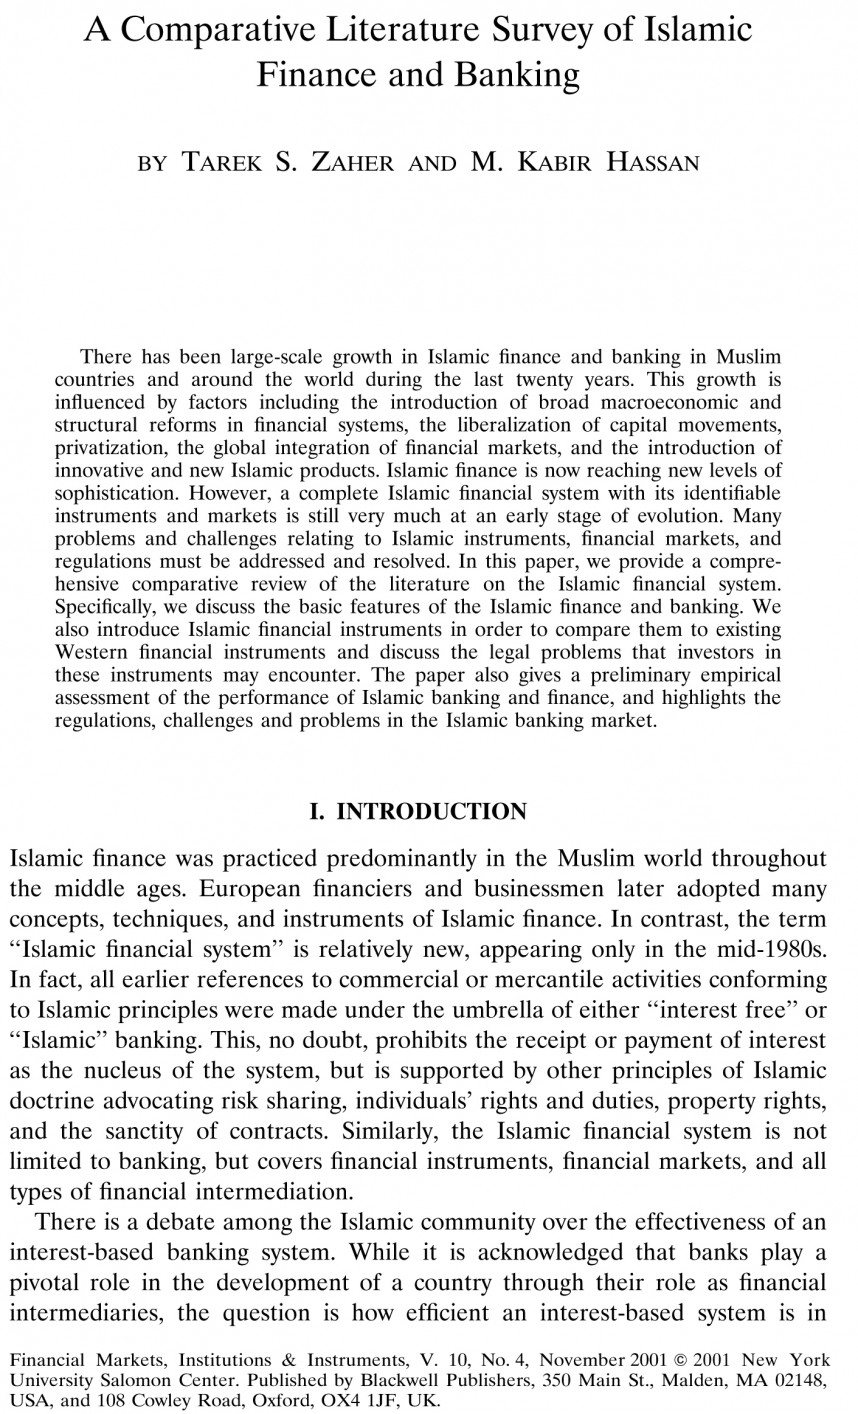 013 Literature Research Paper Help Example Of An Outline For Striking A Literary